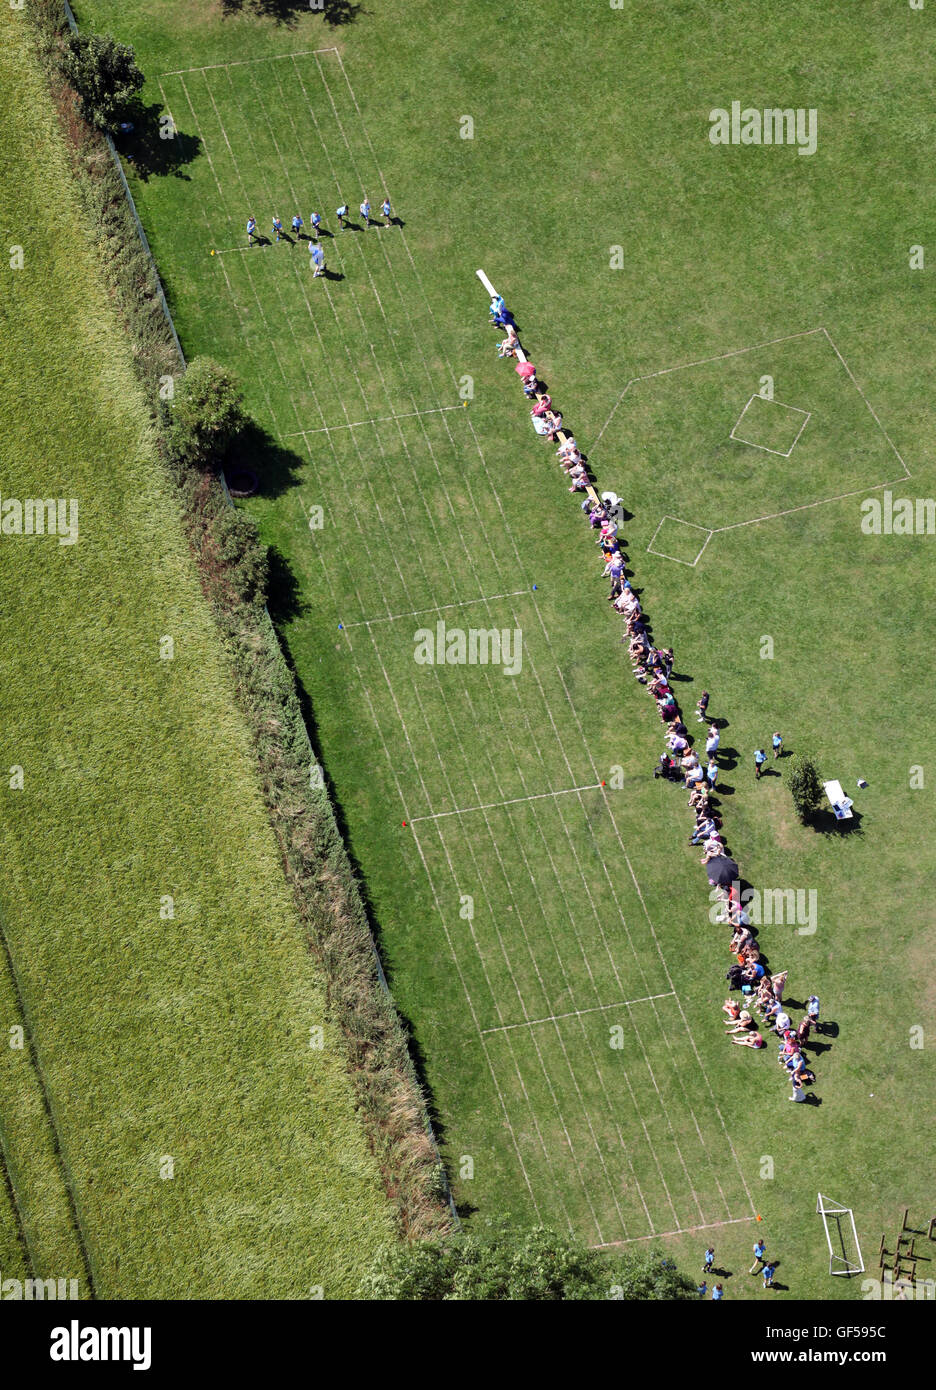 aerial view of a typically English school sports day - Stock Image